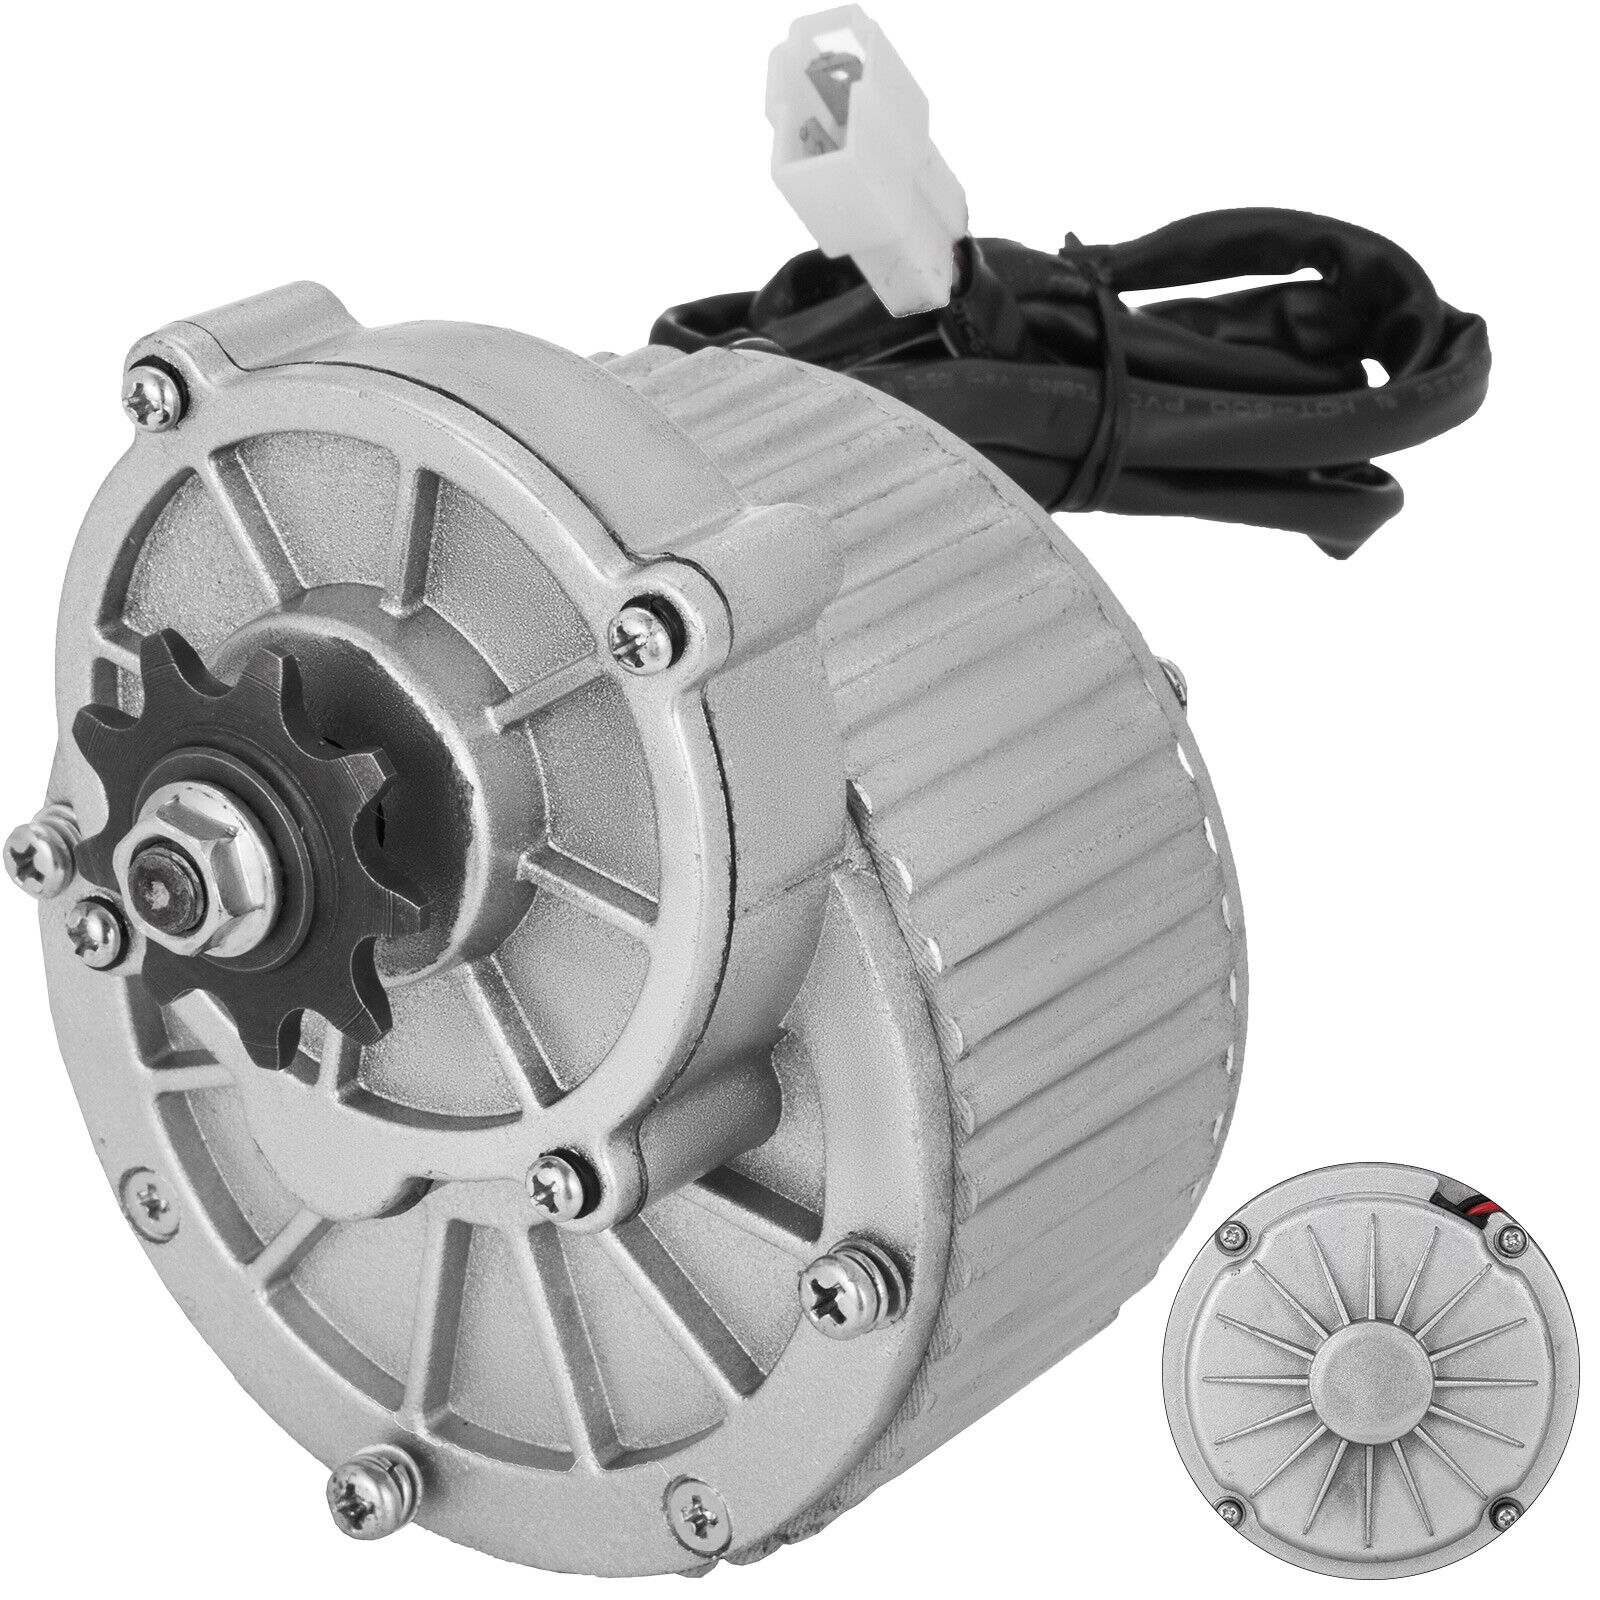 450 W 24V electric motor gear reduction  f ebike Moped Scooters Gear Reduction  outlet factory shop